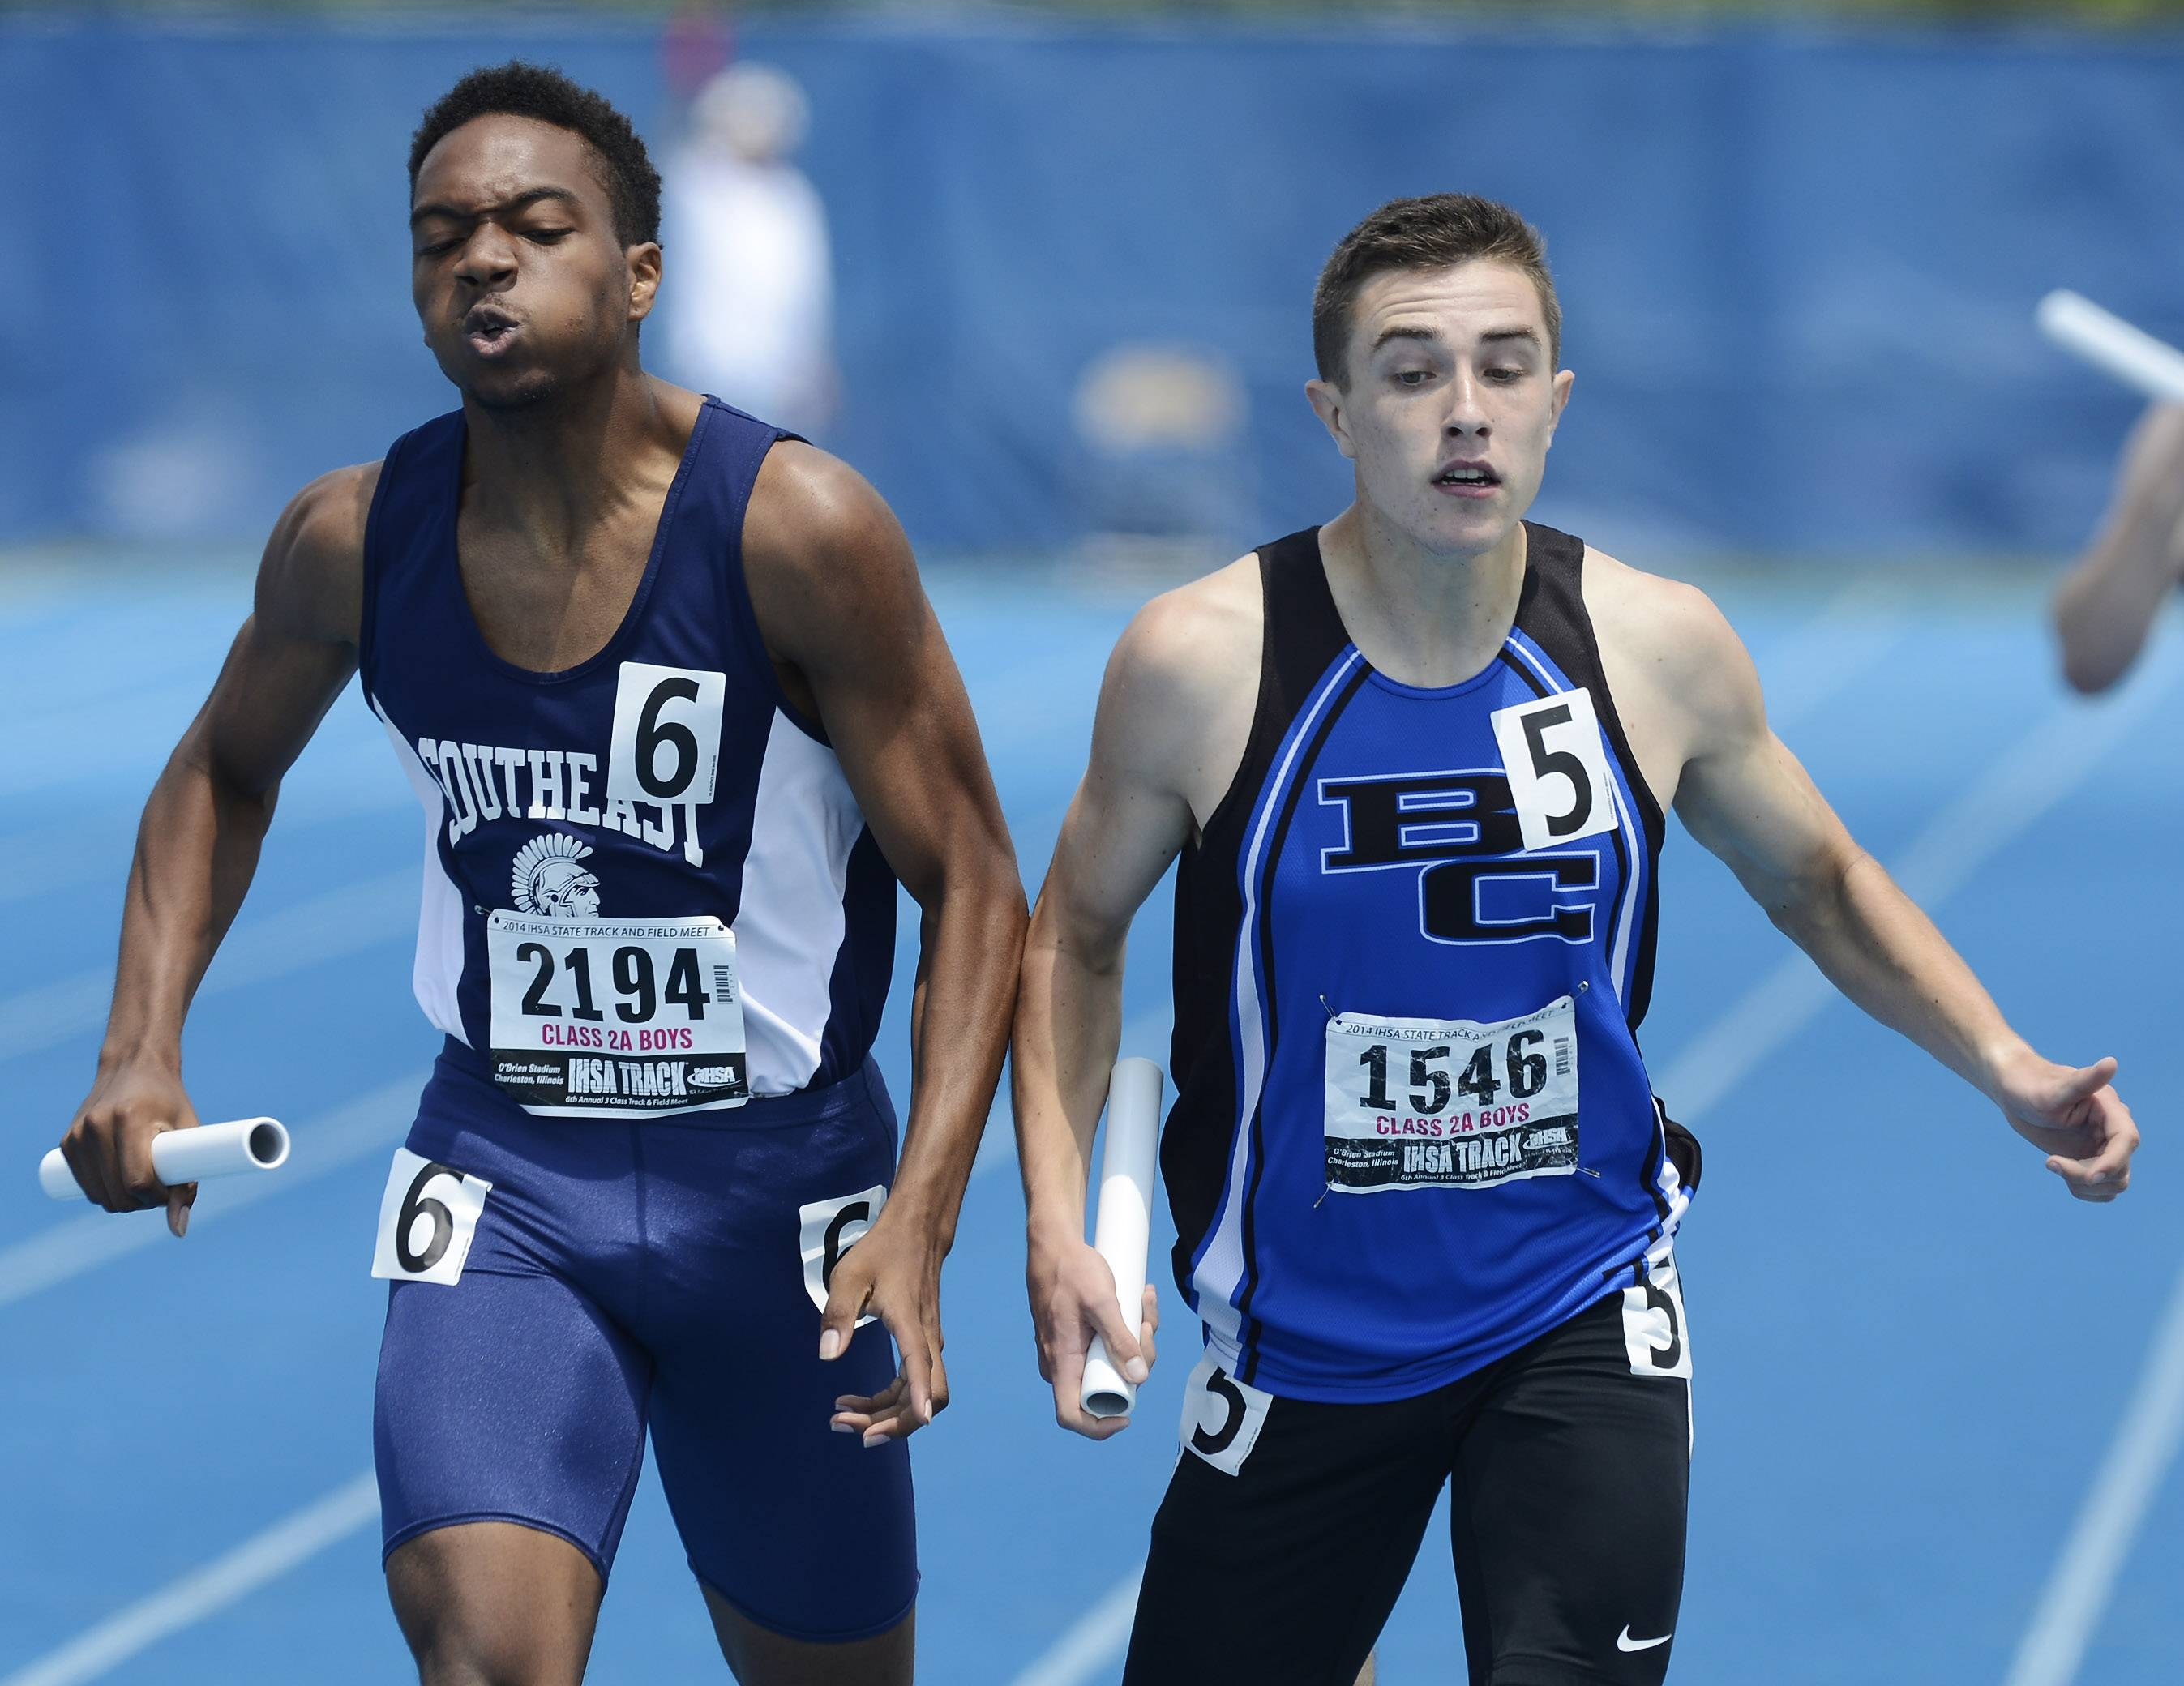 Matt O' Connor, right, of Burlington Central just edges Troy Bunch of Springfield Southeast at the finish of the 4x400 relay during the Class 2A boys track and field state preliminaries in Charleston on Friday.